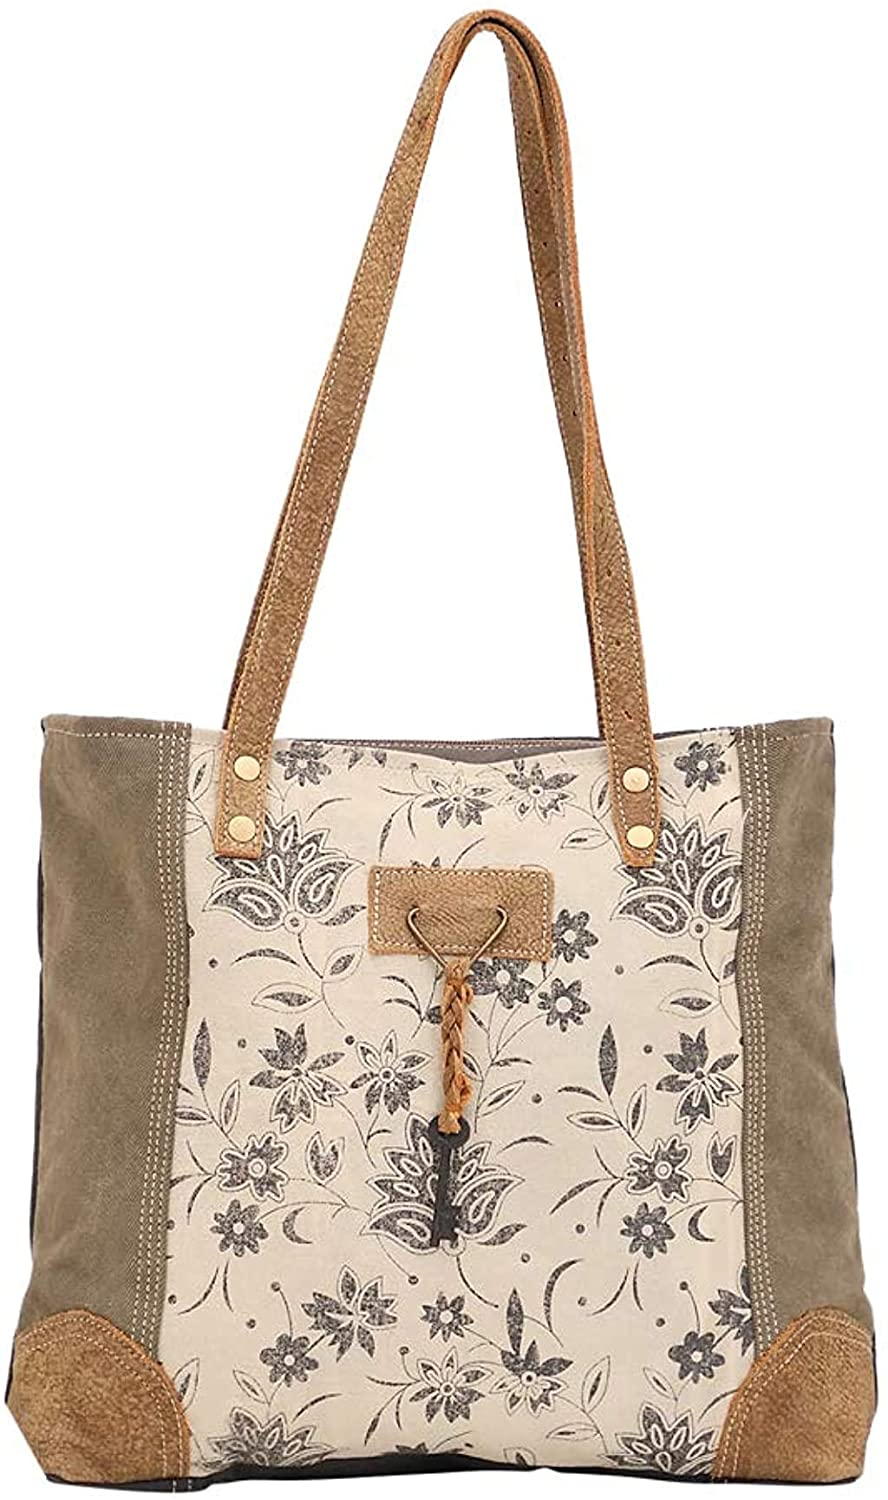 Amazon Com Myra Bag Unique Key Upcycled Canvas Cowhide Tote Bag S 1522 Brown Shoes Последние твиты от myra bag (@myra_bag). myra bag unique key upcycled canvas cowhide tote bag s 1522 brown